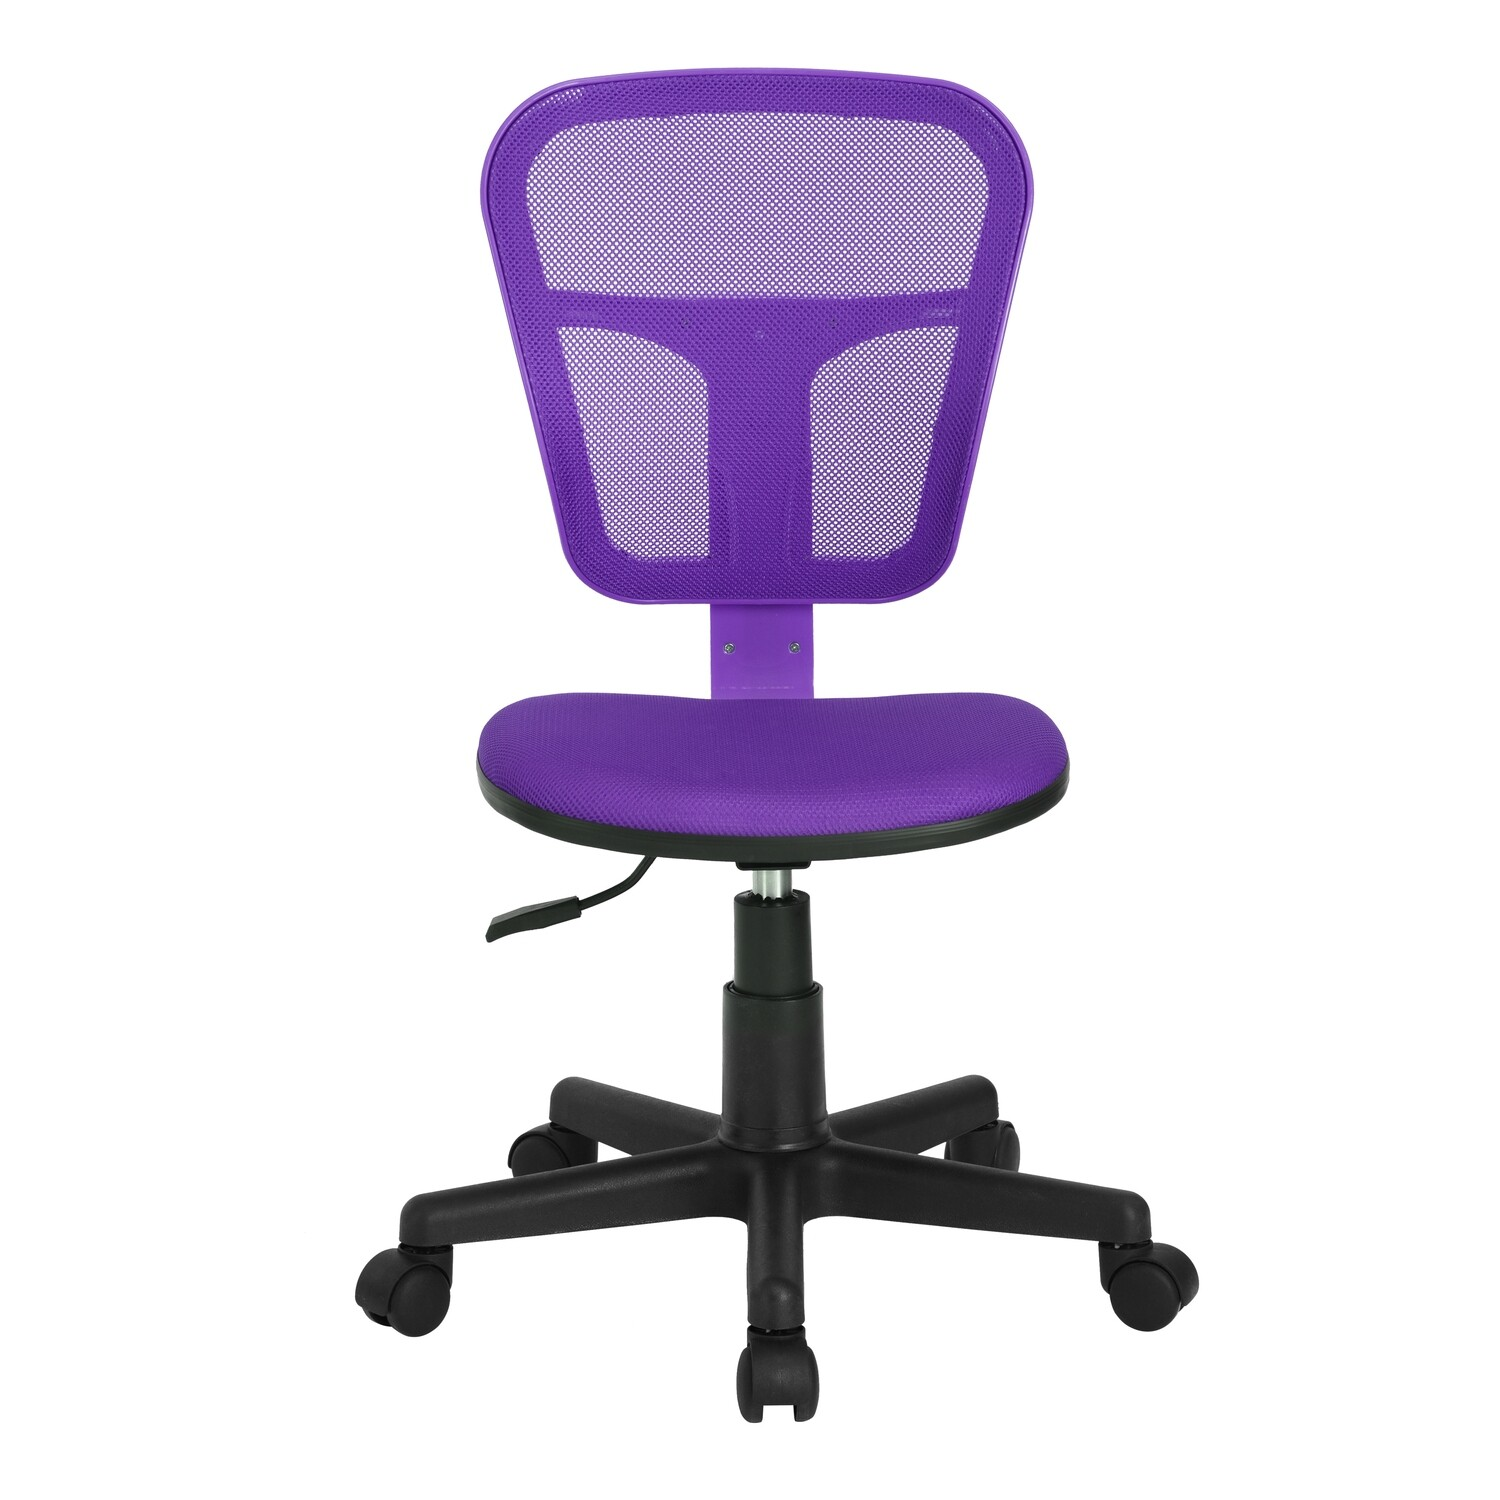 Adjustable Office Chair w/o Armrest (Flying Purple)